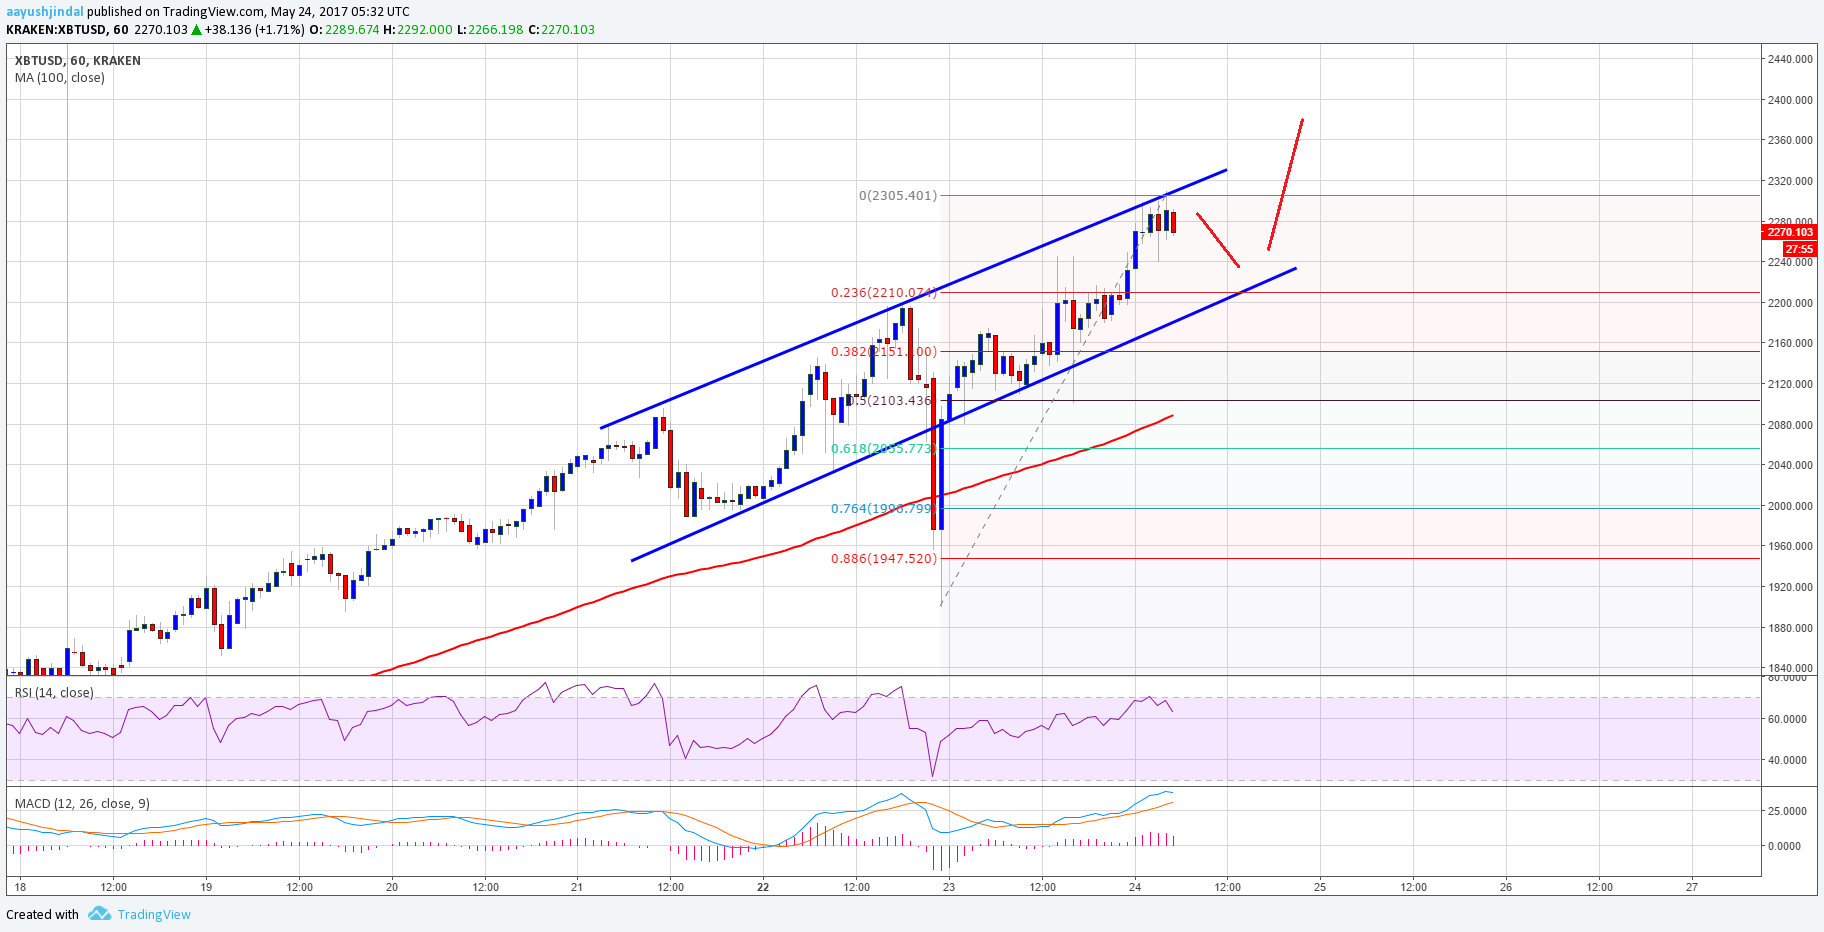 Bitcoin Value Chart >> Bitcoin Price Forecast: BTC/USD Set To Break $2500